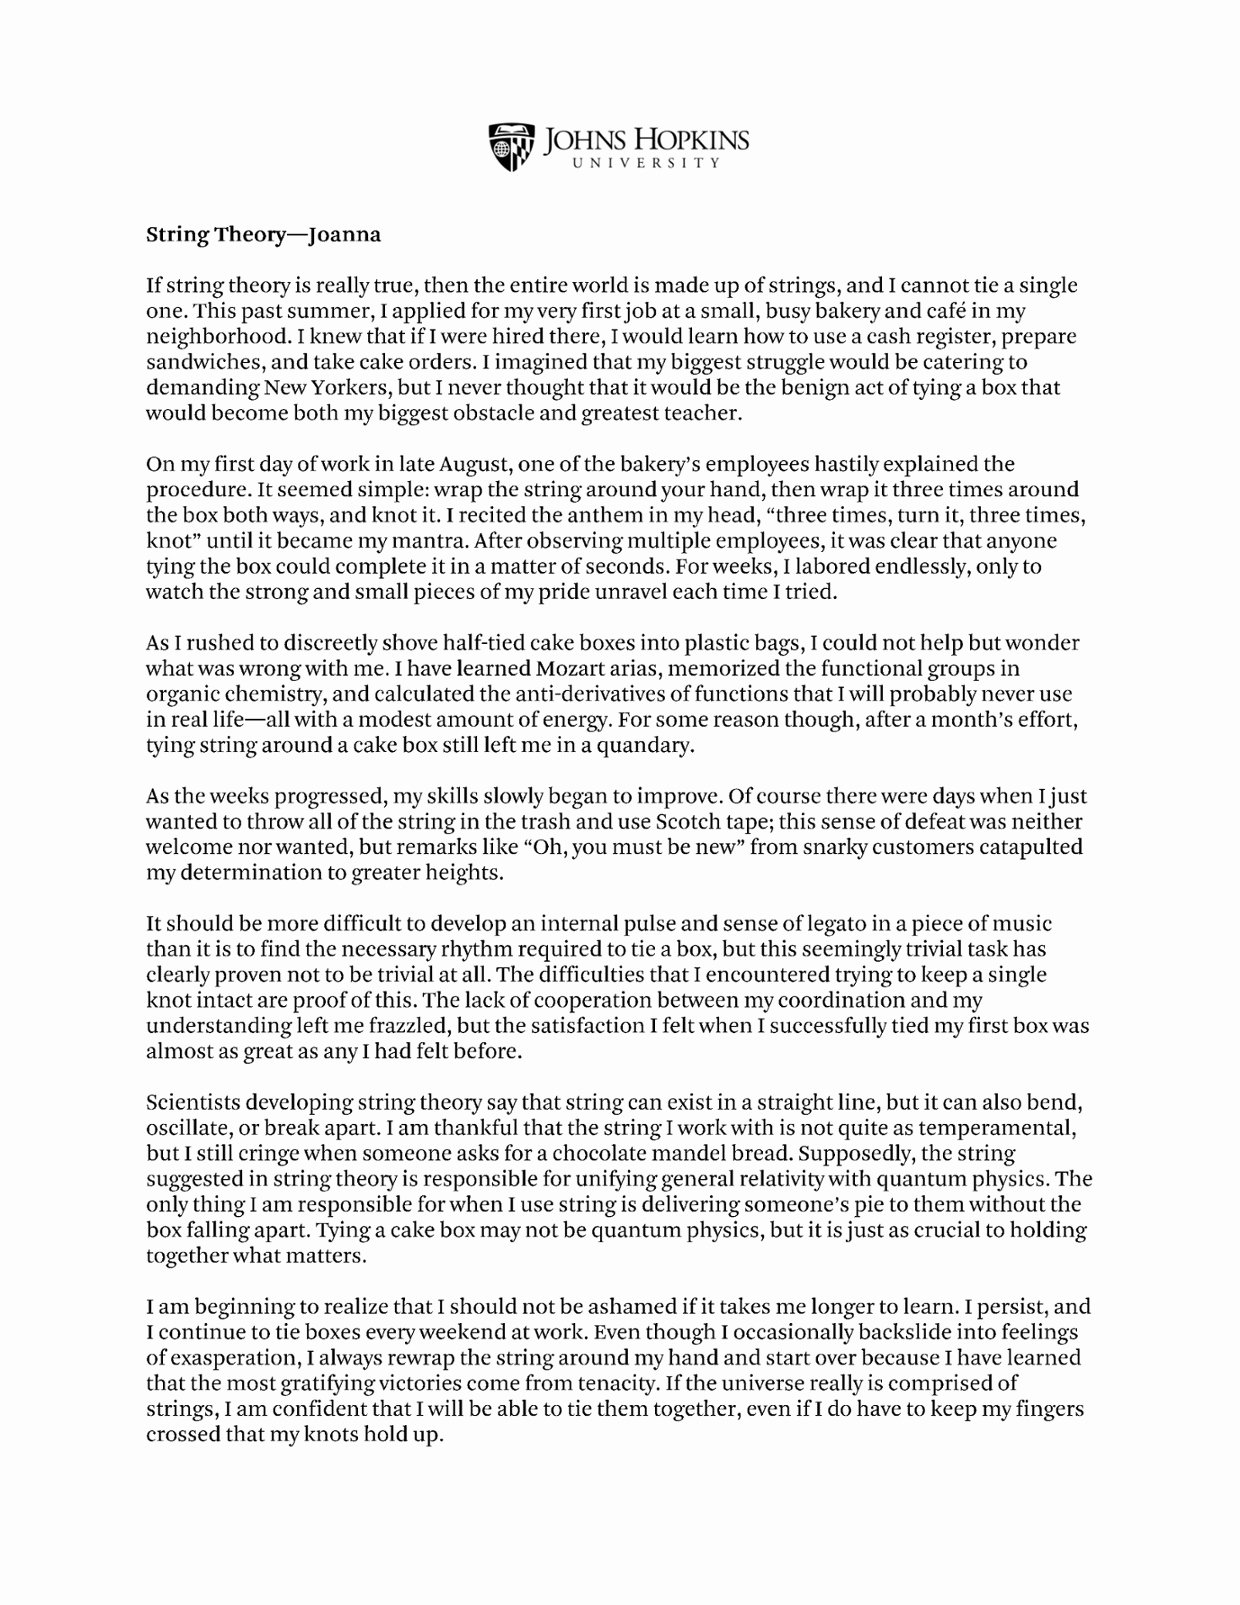 Best Essays Ever Written Awesome Real College Essay 1 Thinglink